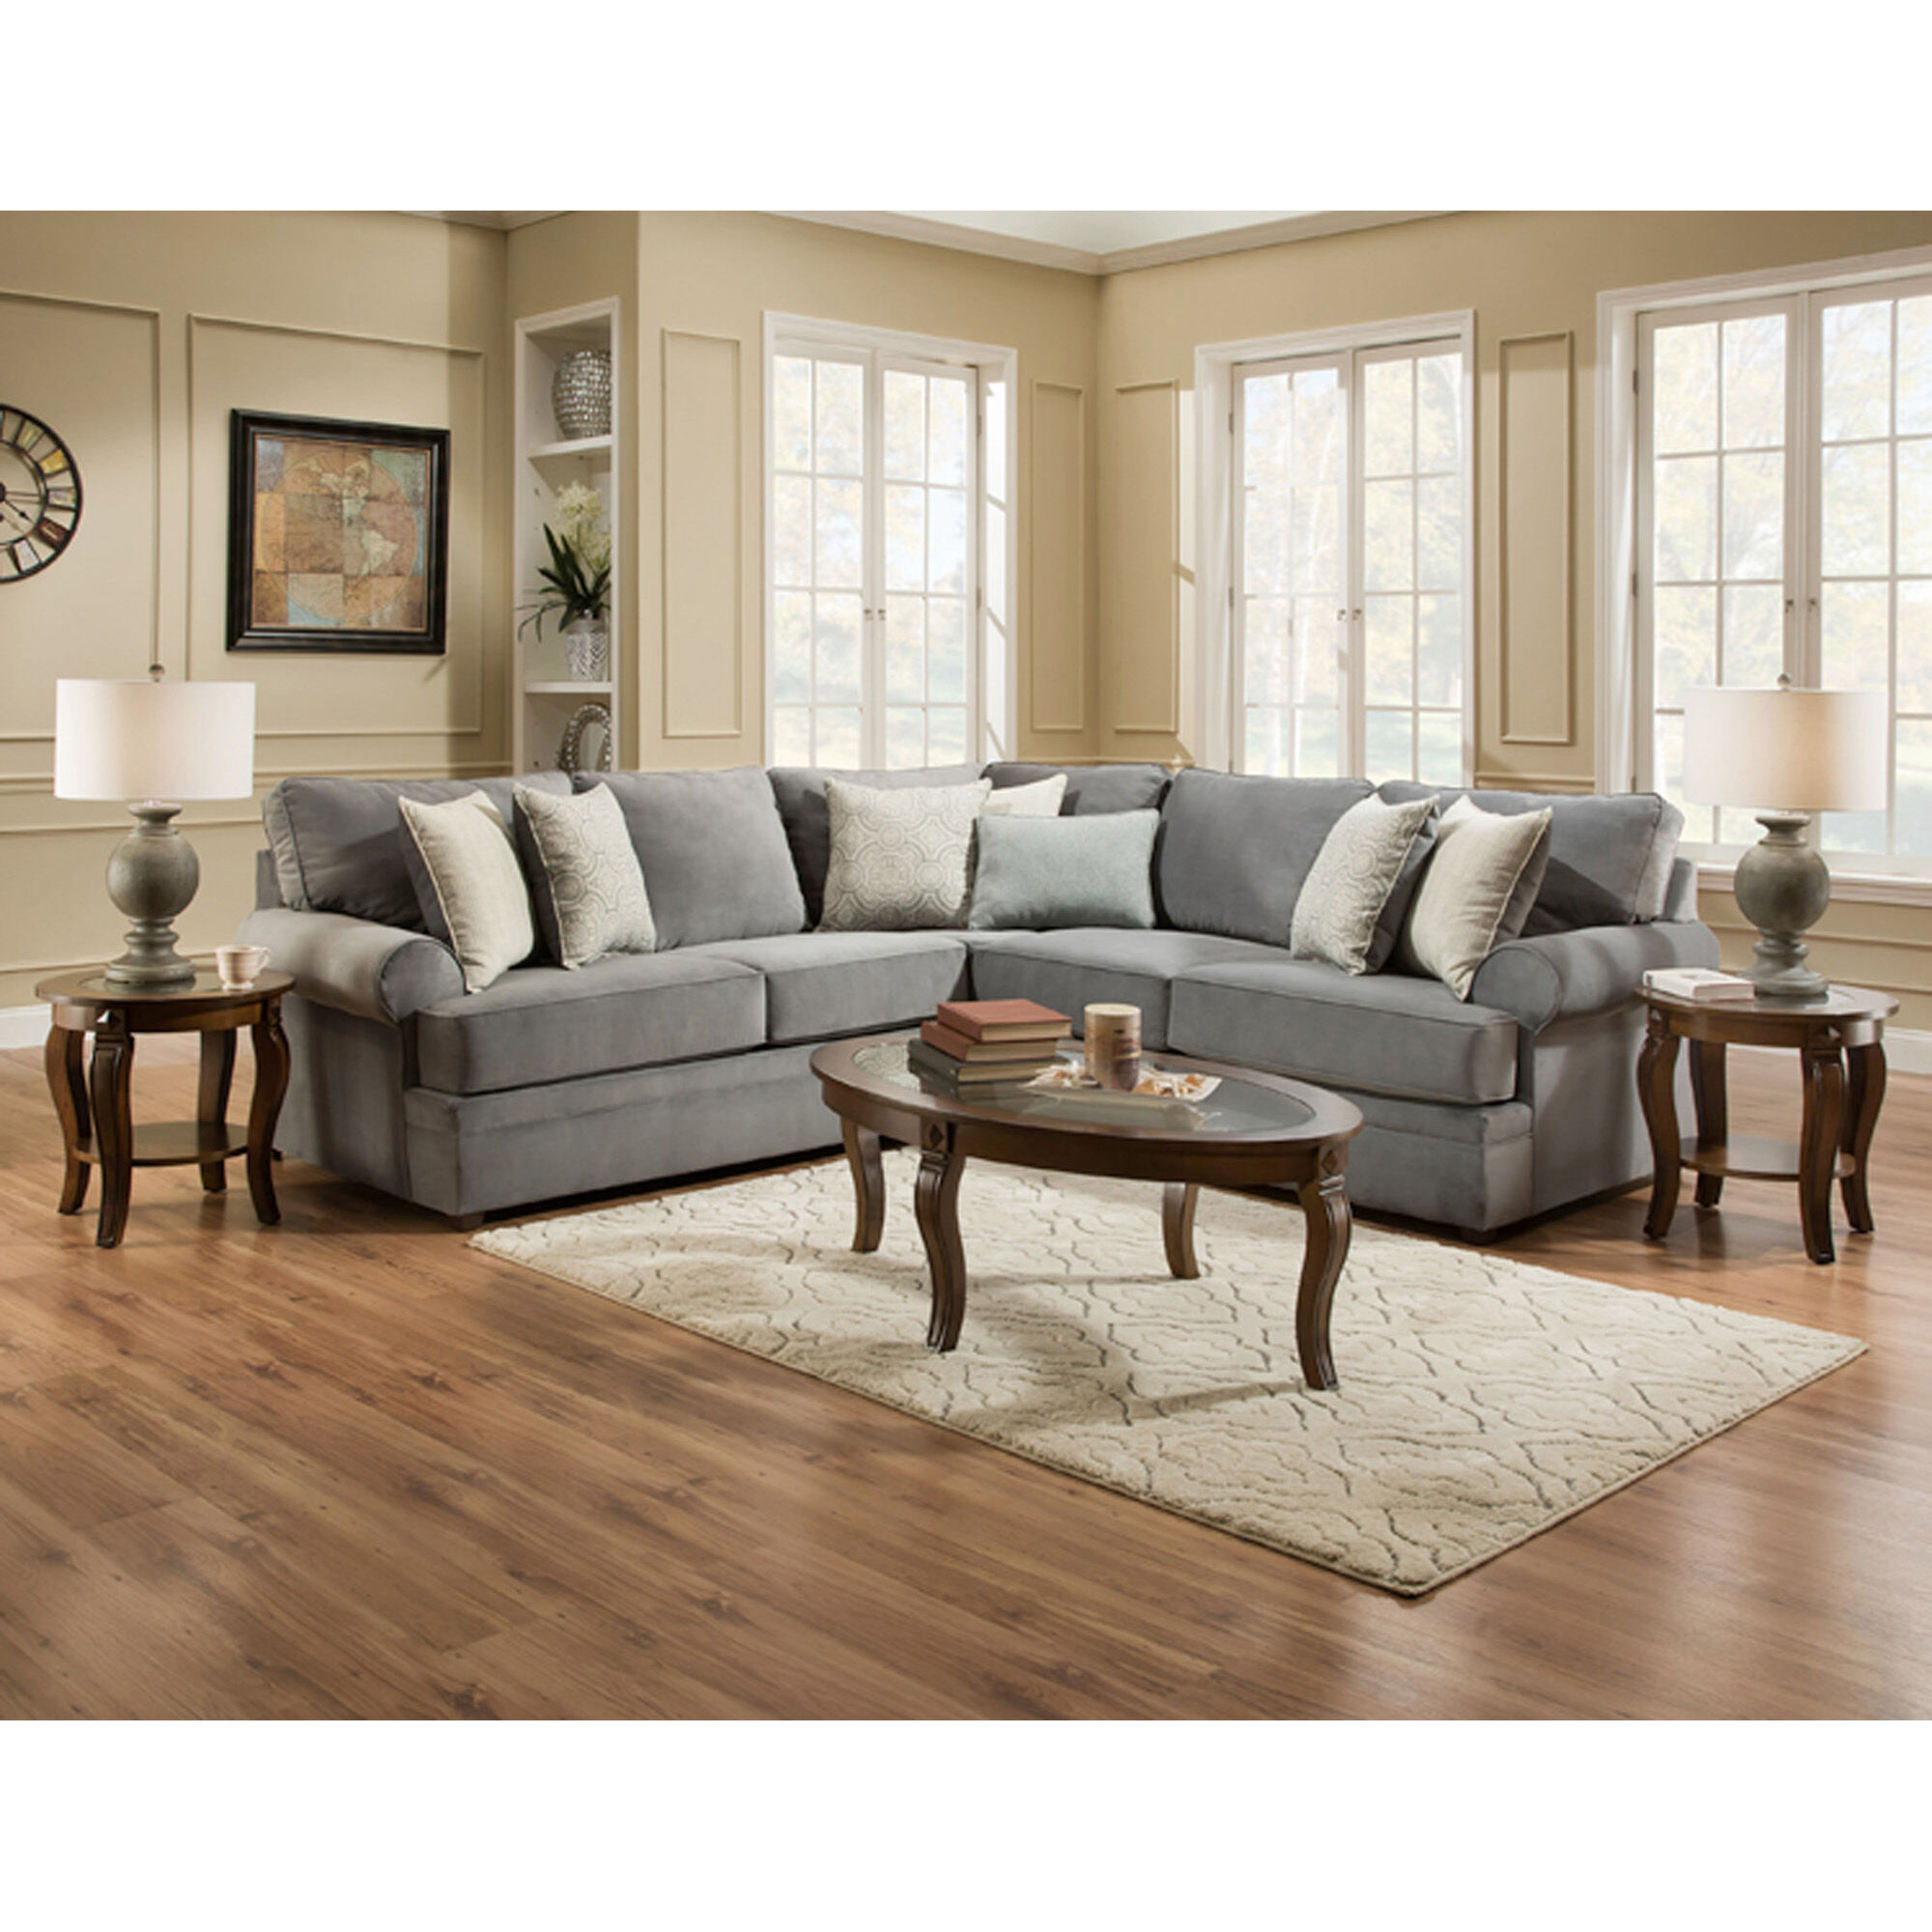 2 Piece Naeva Living Room Collection Sectional